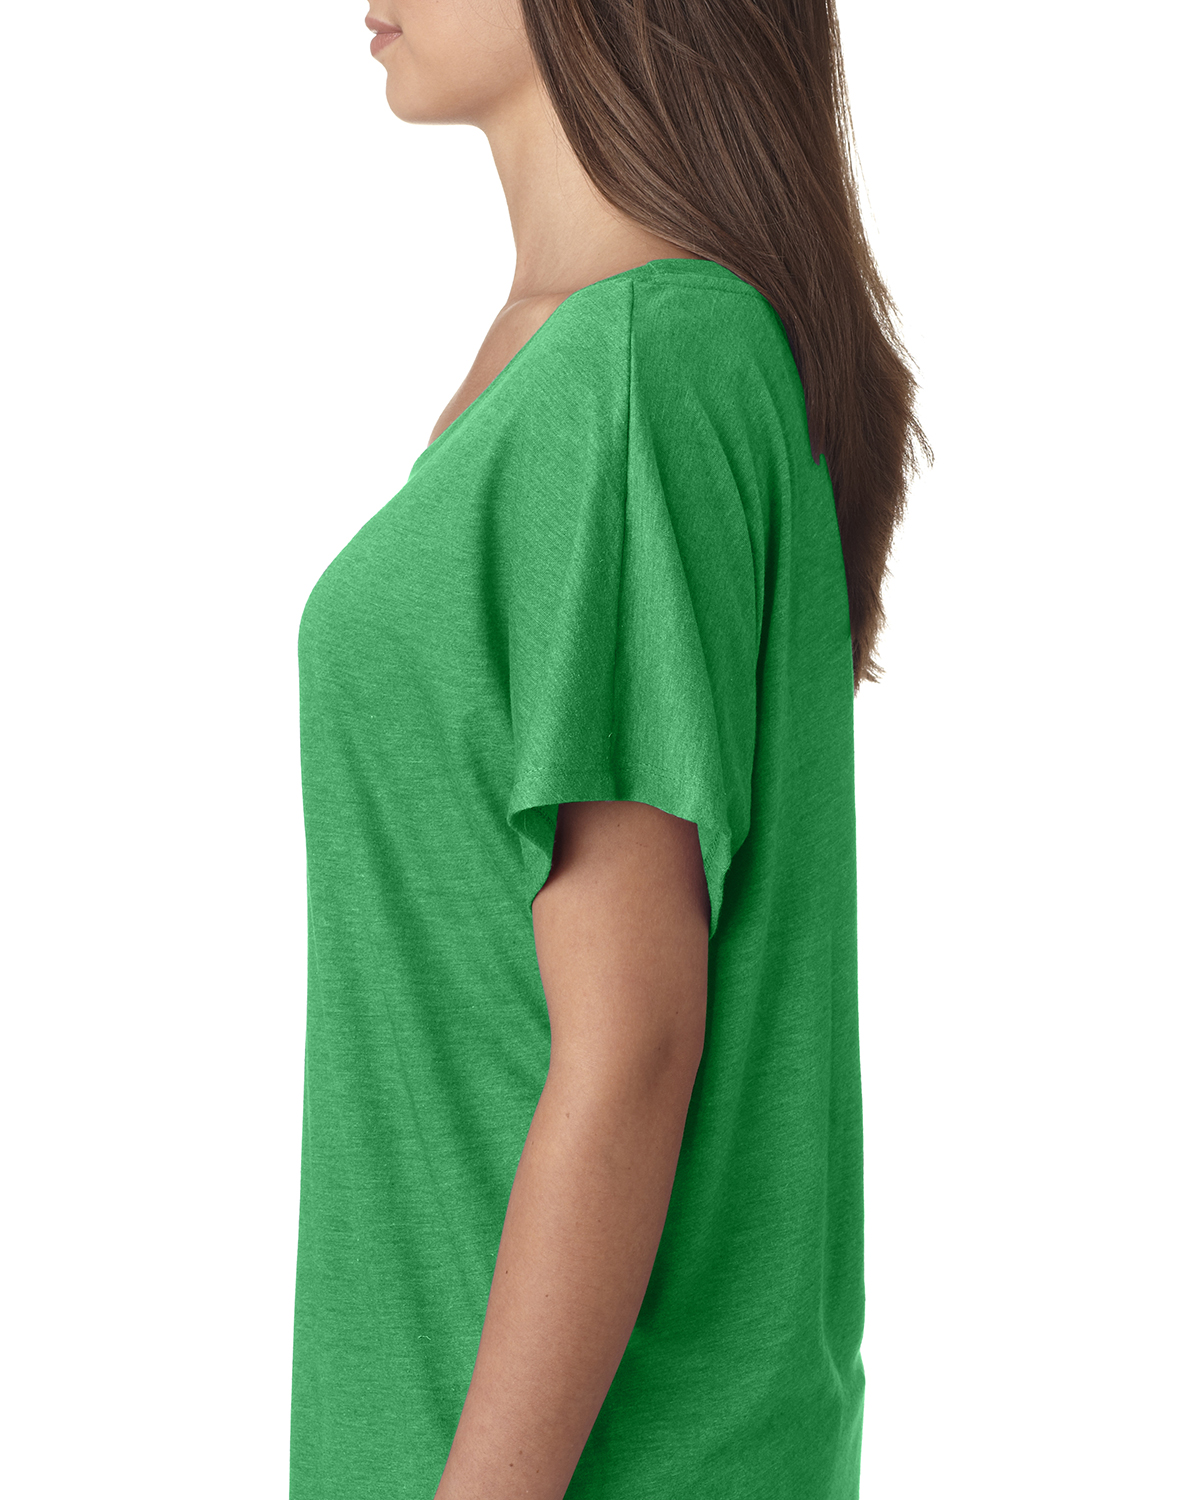 NEW-Next-Level-Junior-Fit-Triblend-Dolman-Sleeve-Relexed-Fit-T-Shirt-B-6760 thumbnail 4